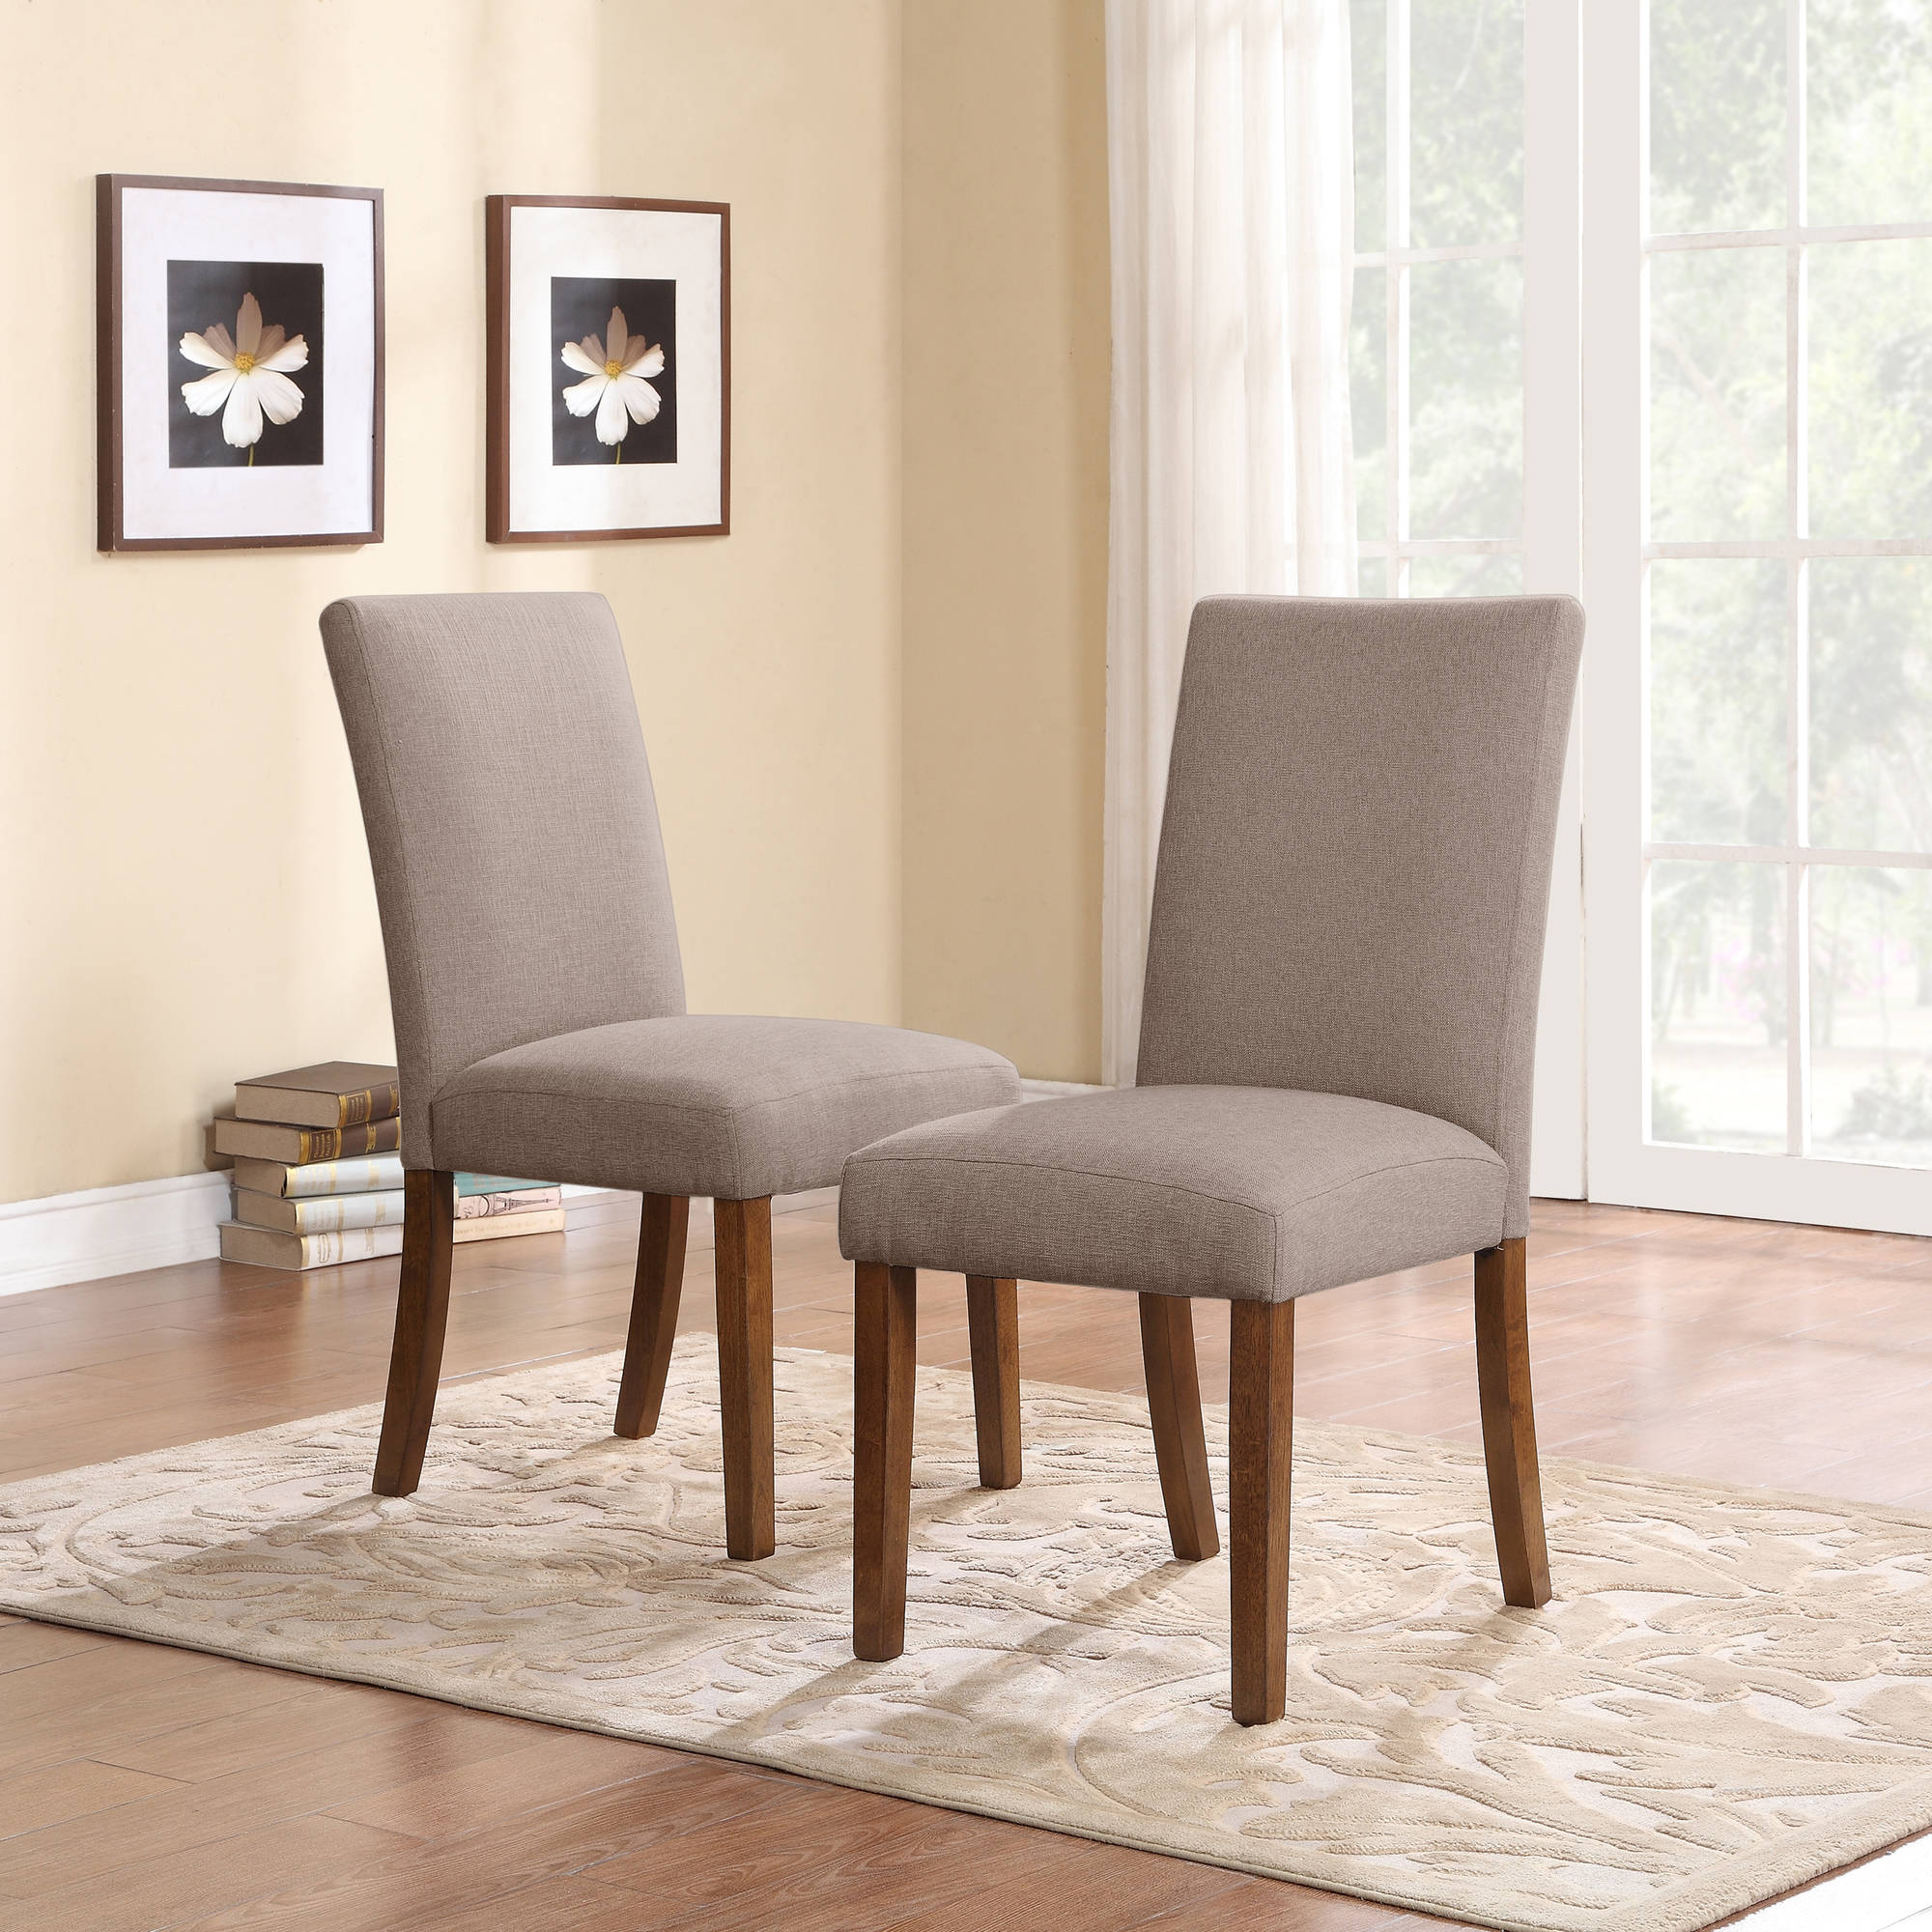 dorel living linen parsons chair set dark pine with gray pottery barn leather seats dining room sets macy sears coffee table light blue accent ikea chairs navy nailhead world